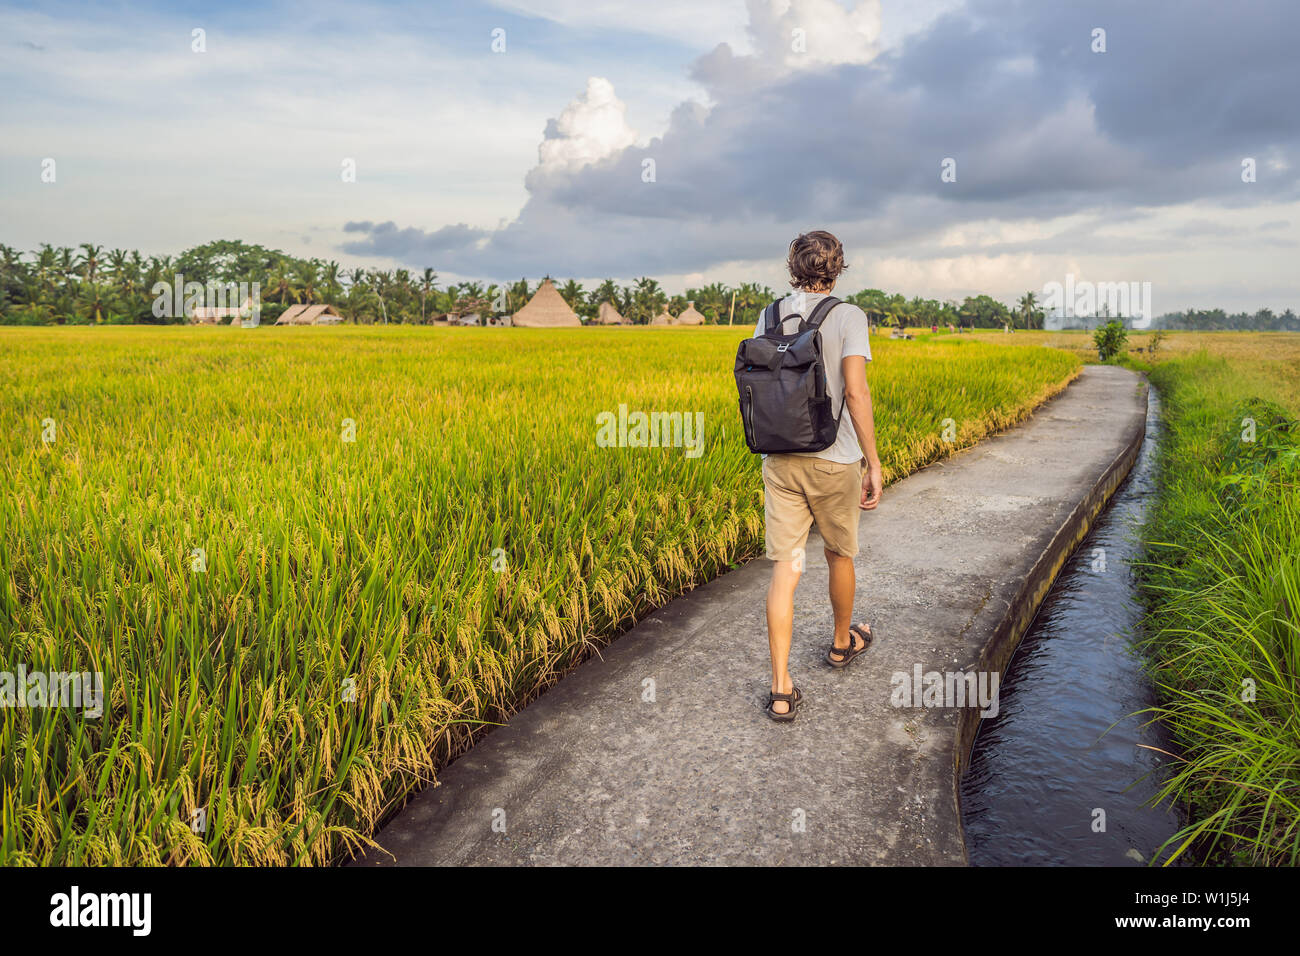 Male tourist with a backpack goes on the rice field - Stock Image